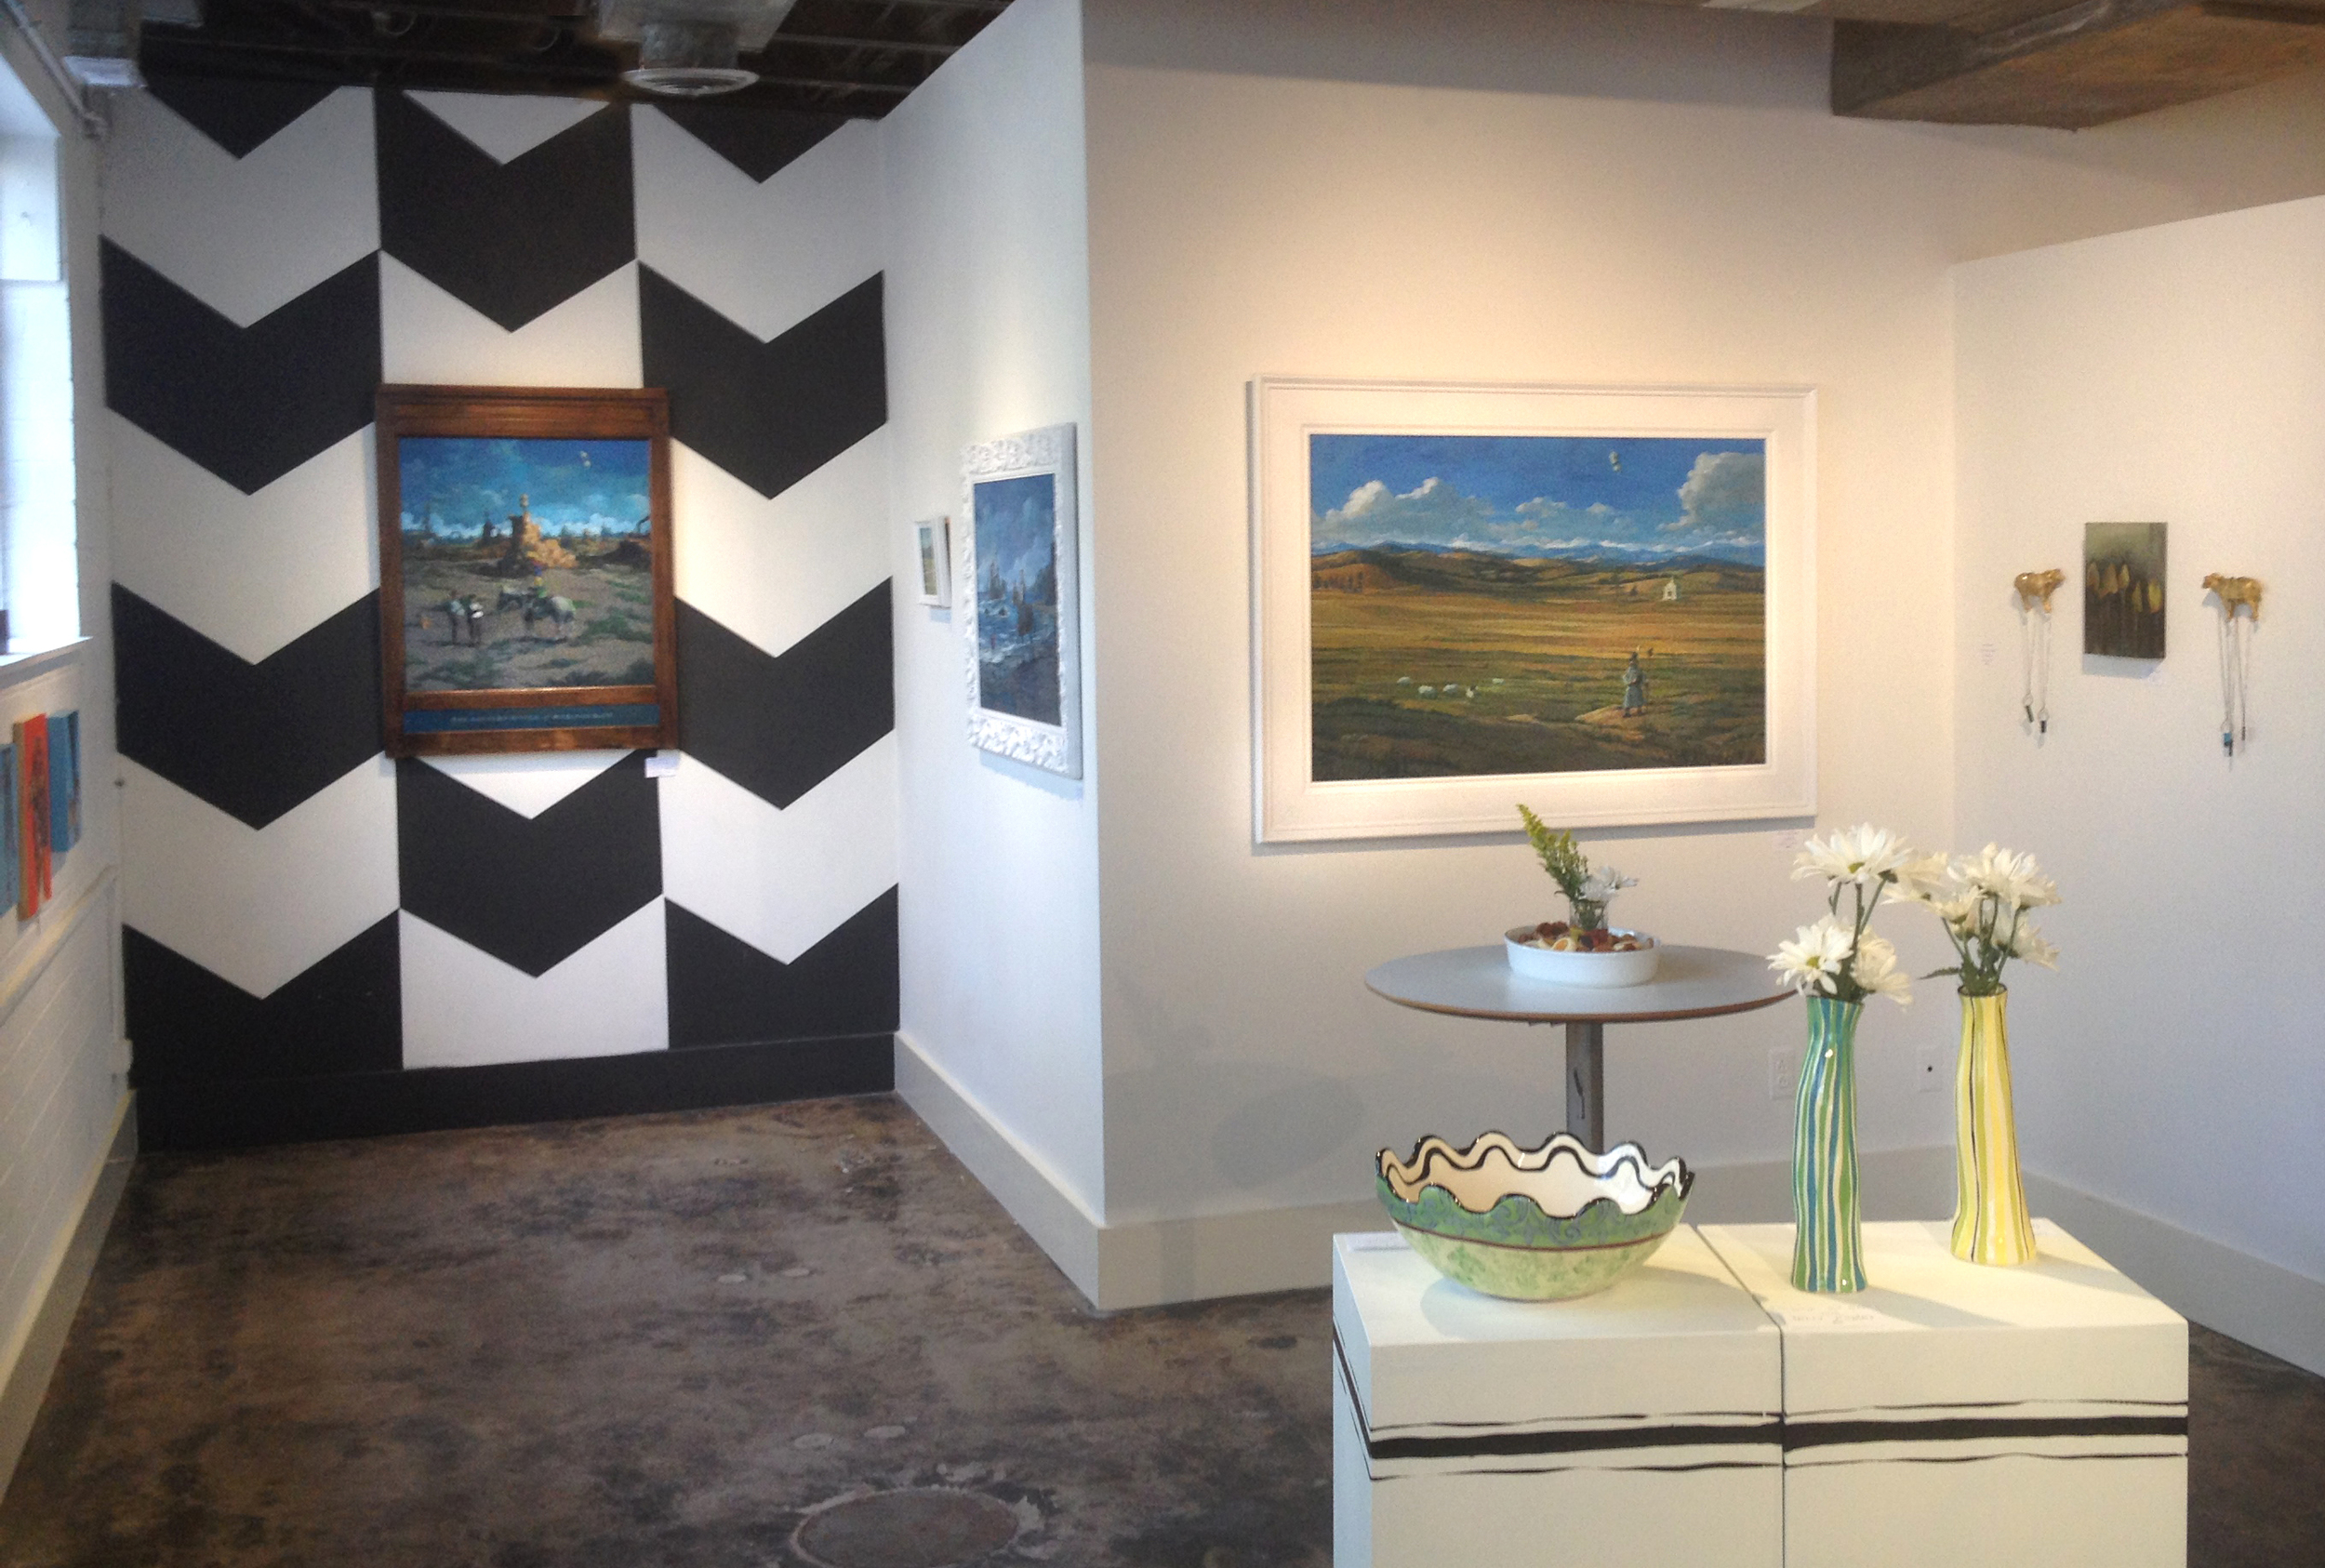 Gallery show at Studio K in Charlotte, NC.